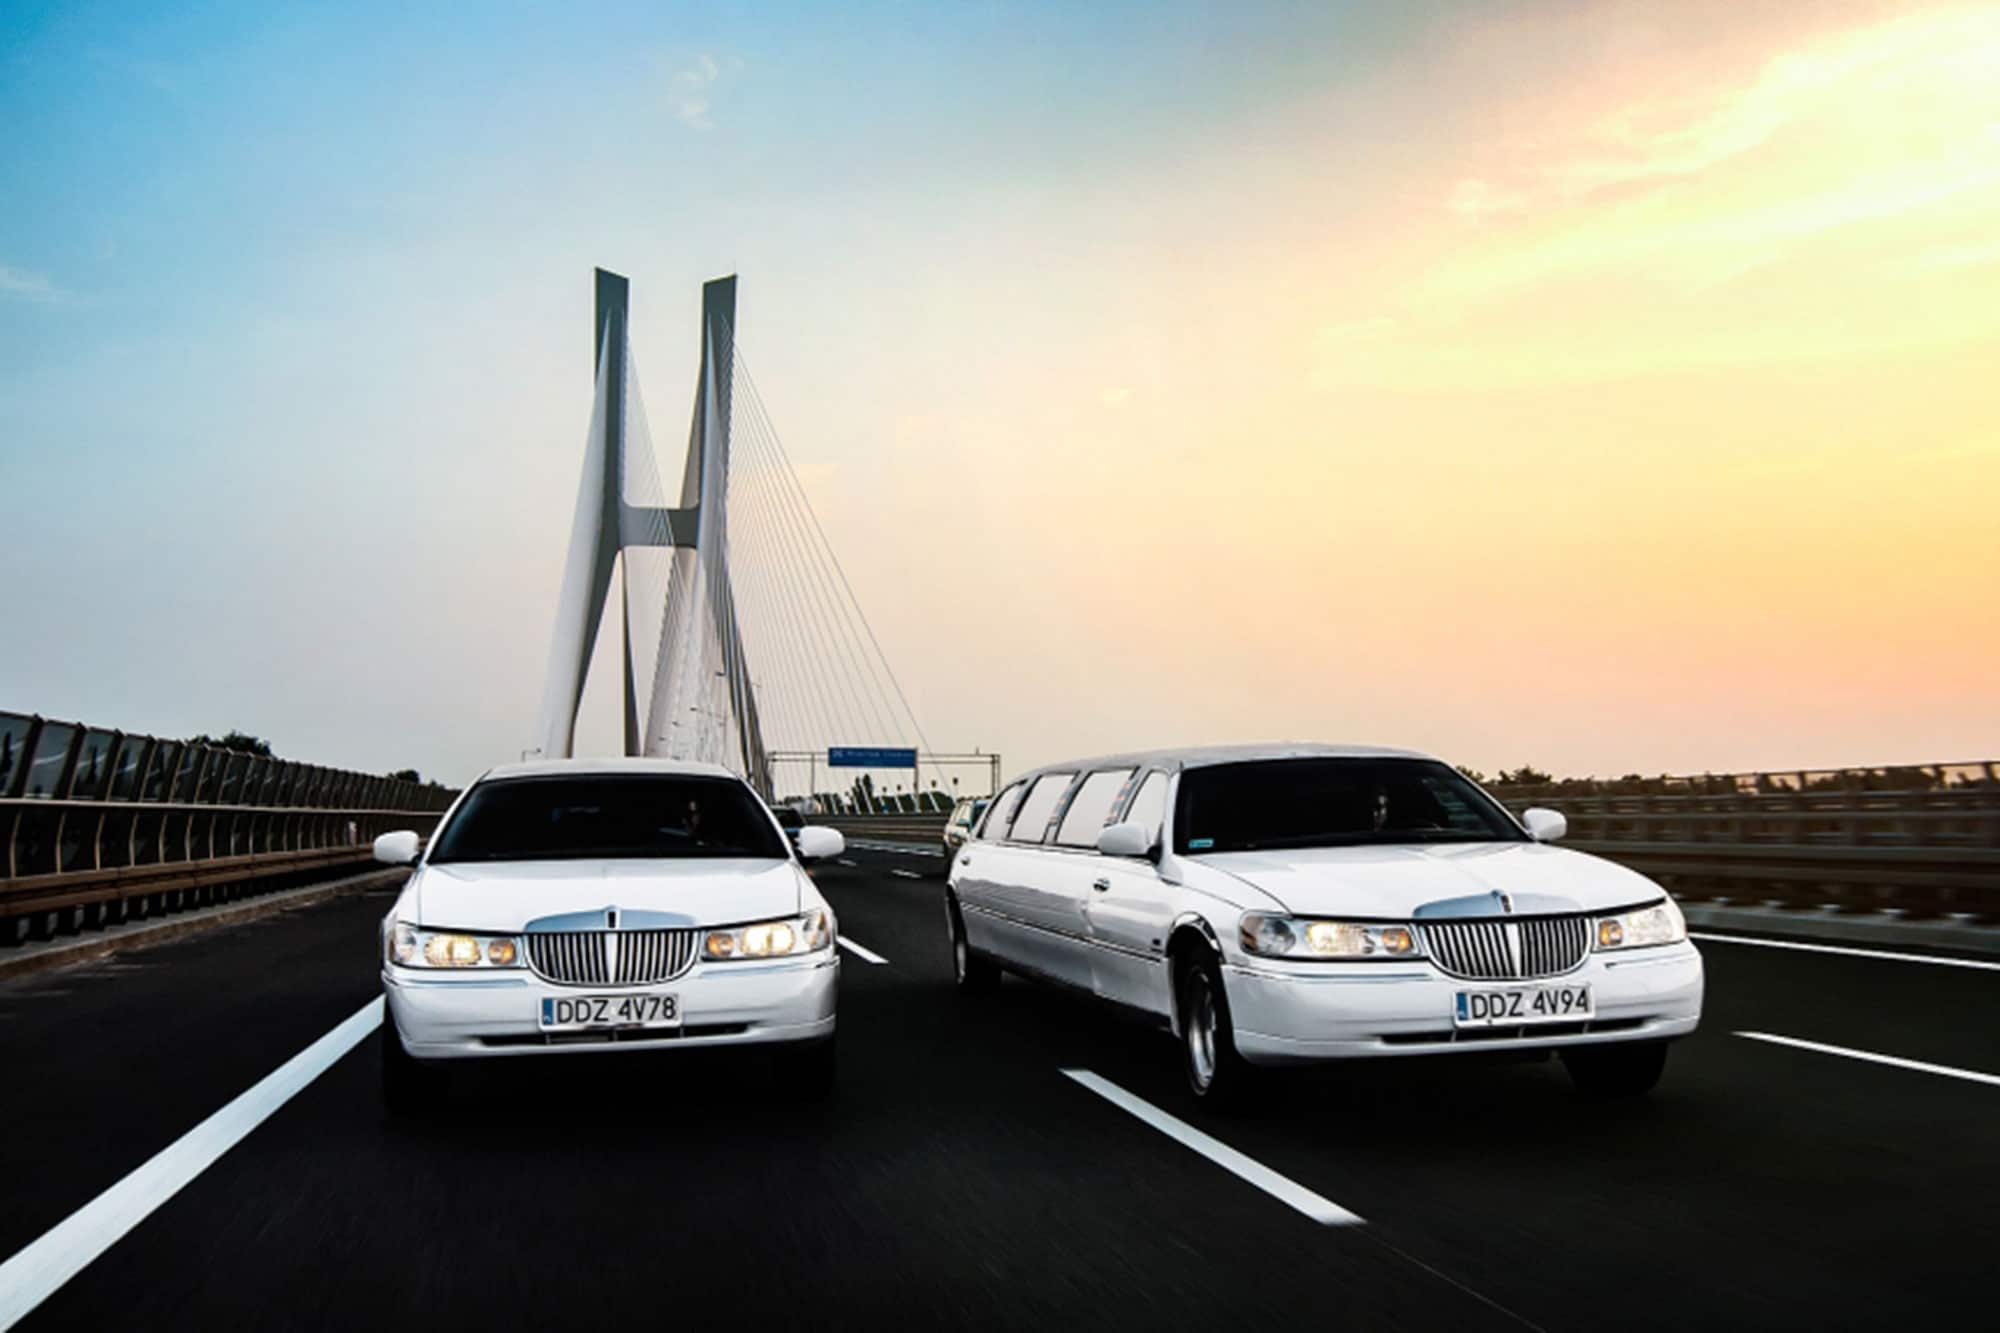 Limousine for airport transfer in Wroclaw is premium